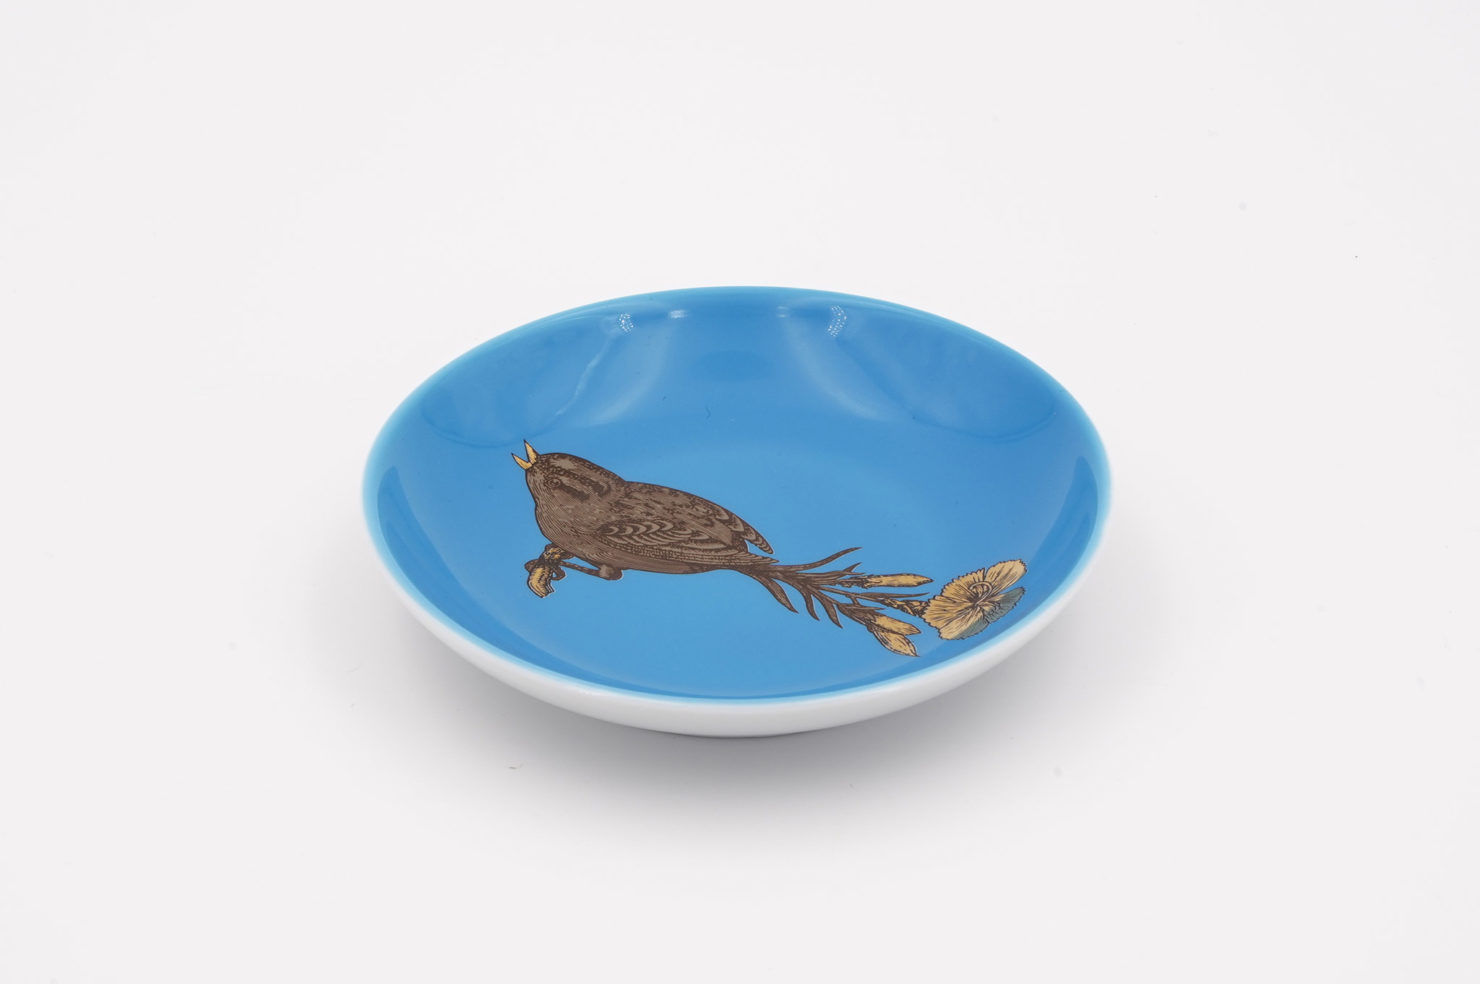 BIRD MINI PLATES BY PUDDIN HEAD AVENIDA HOME